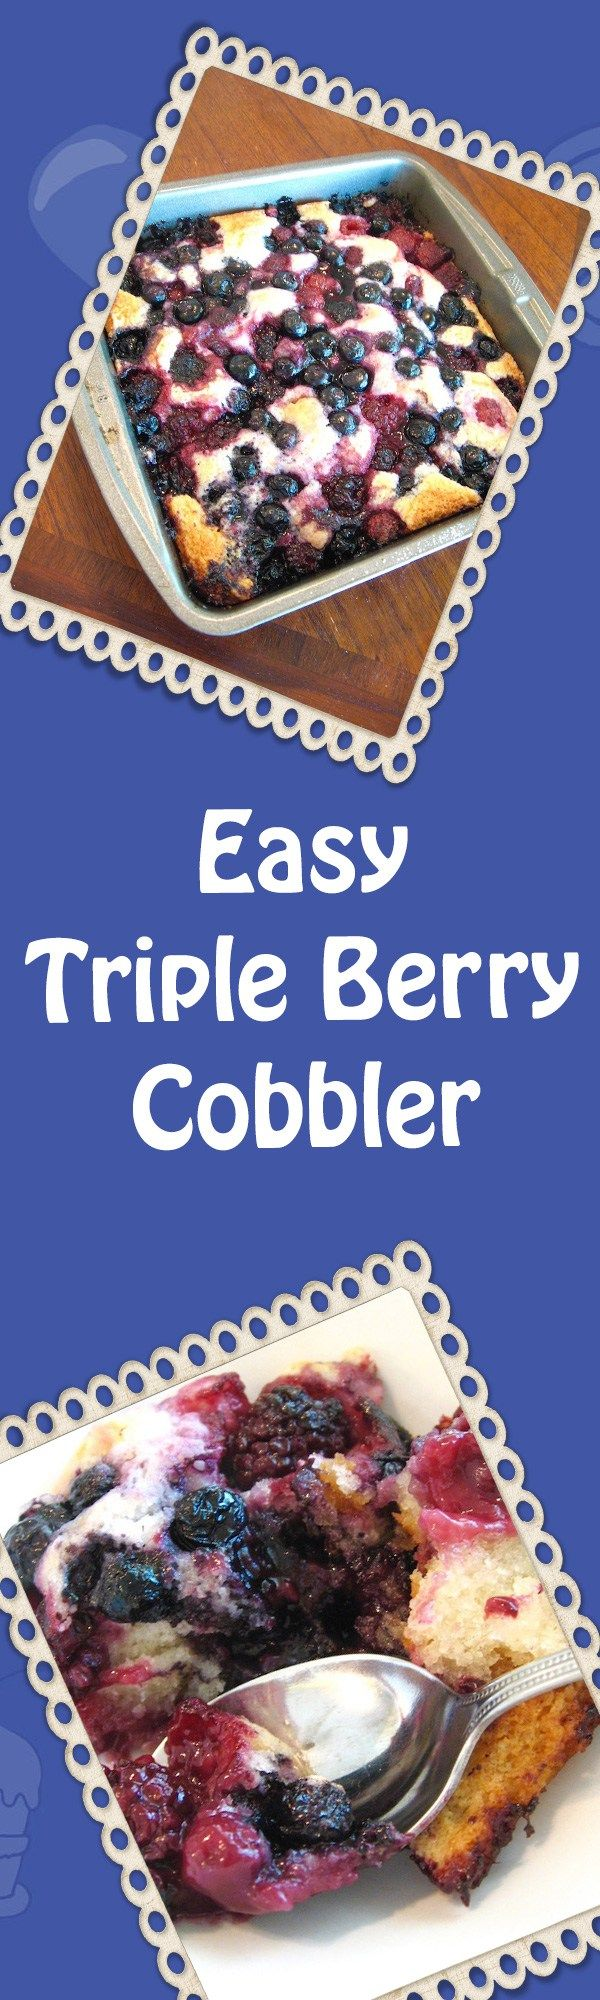 Easy Triple Berry Cobbler - made with frozen berries this recipe is super easy and quick, as well as delicious. Great for last-minute company. | delishable.net